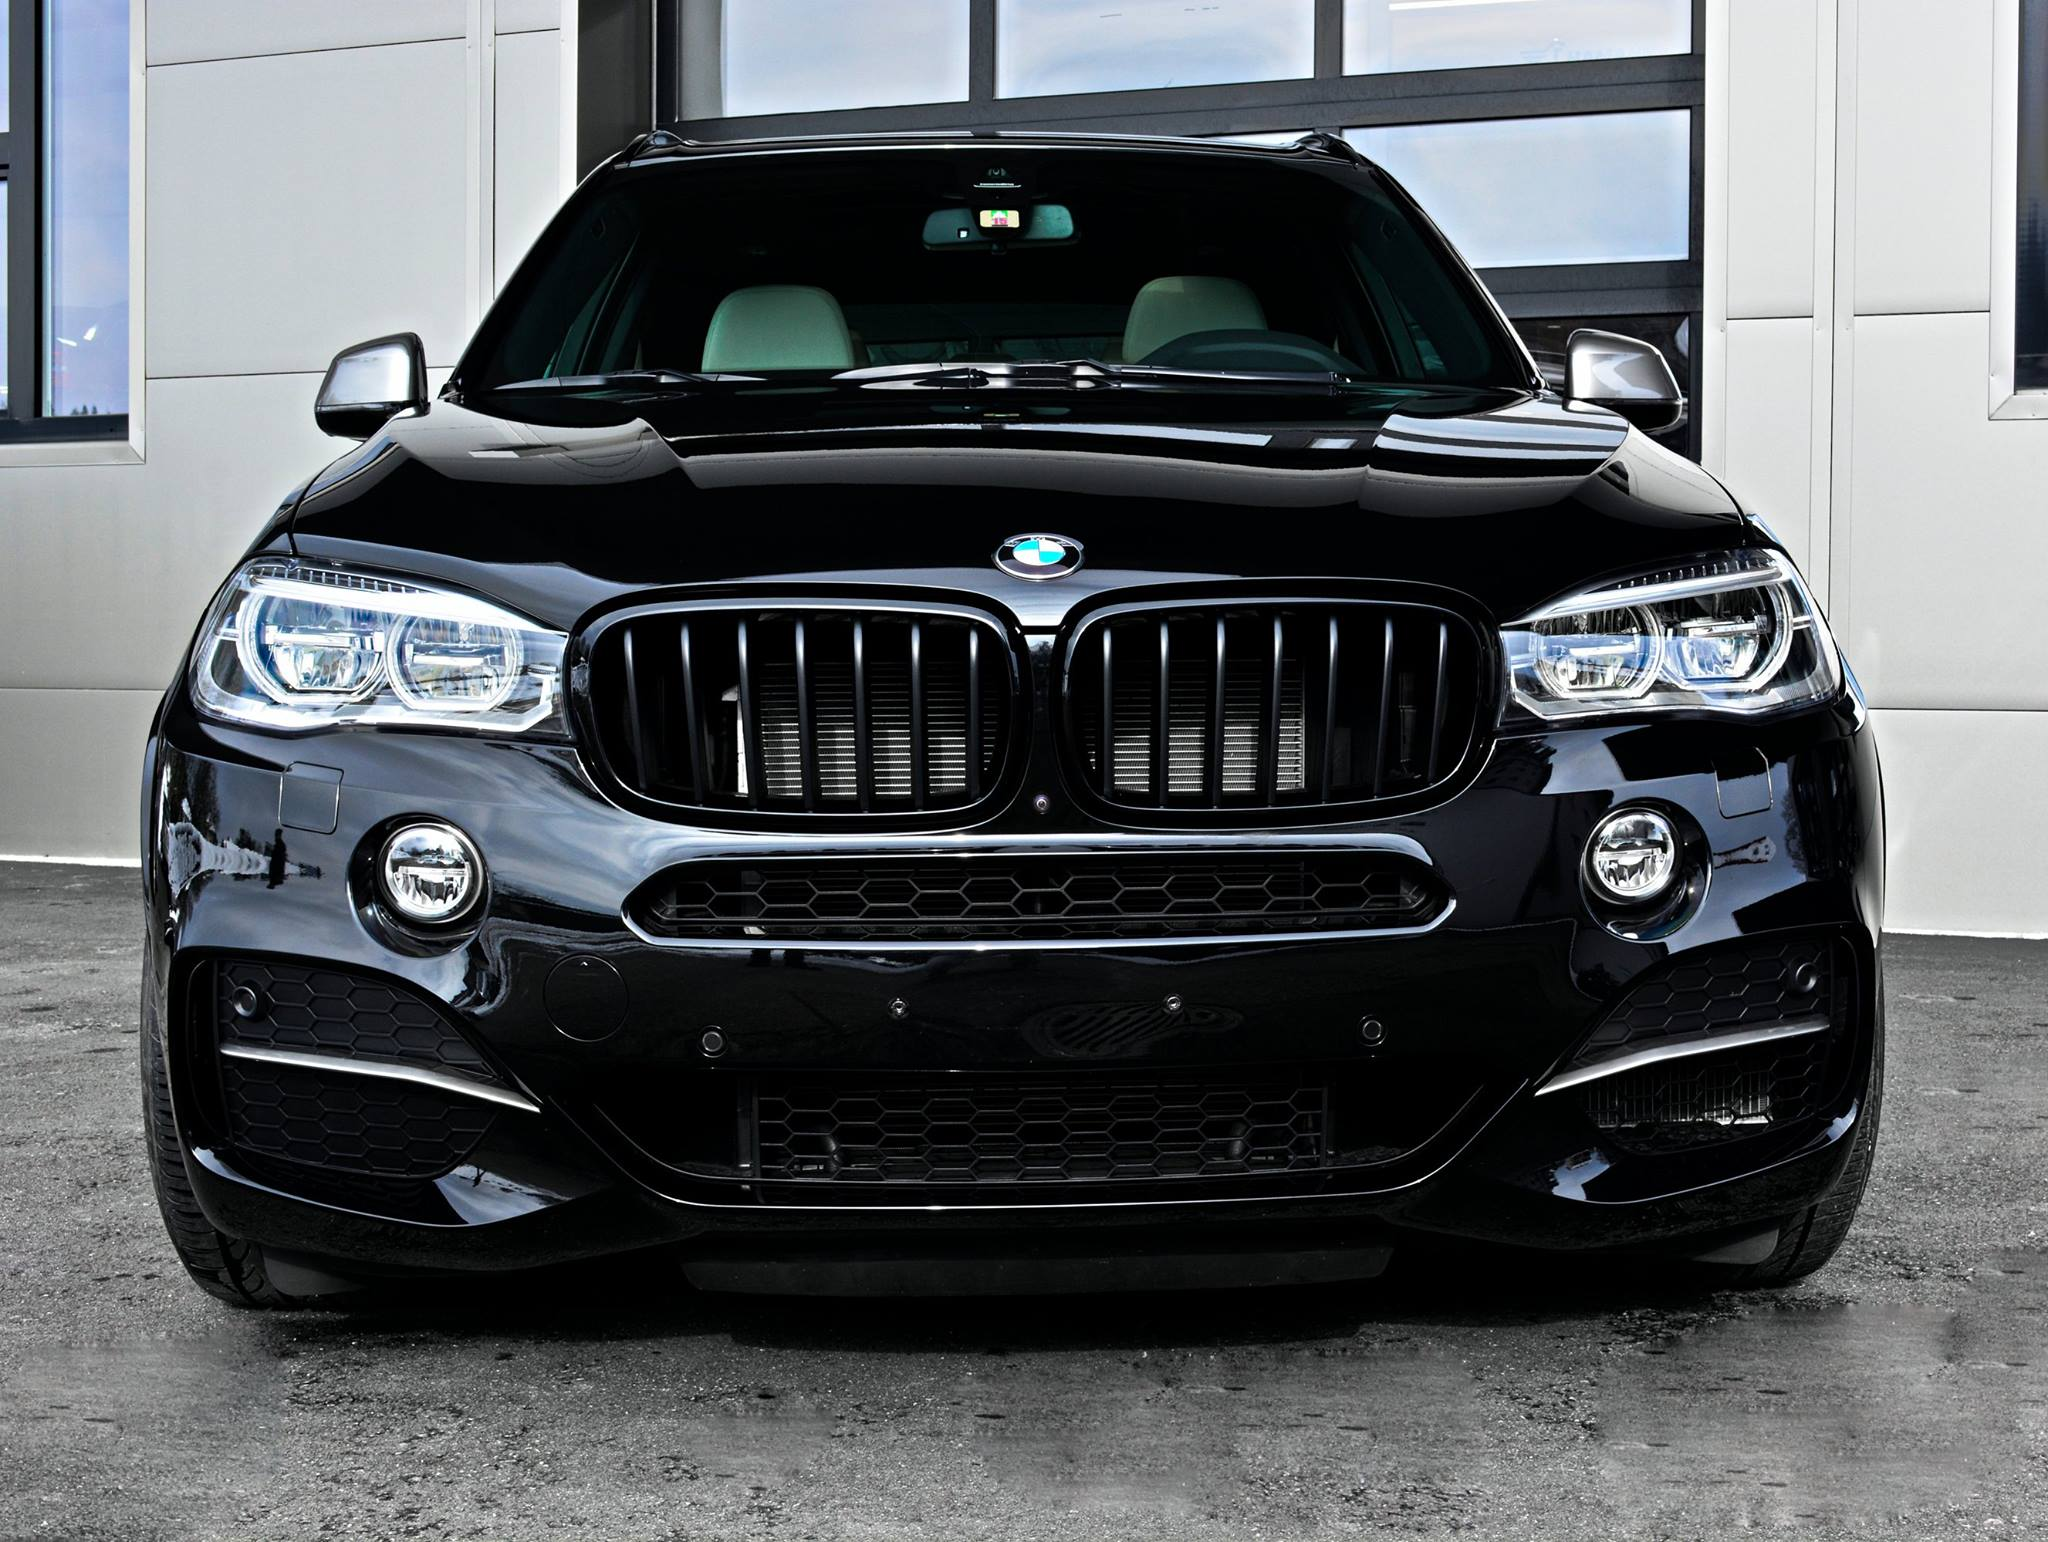 Hamann Bmw X5 M50d With 430 Hp